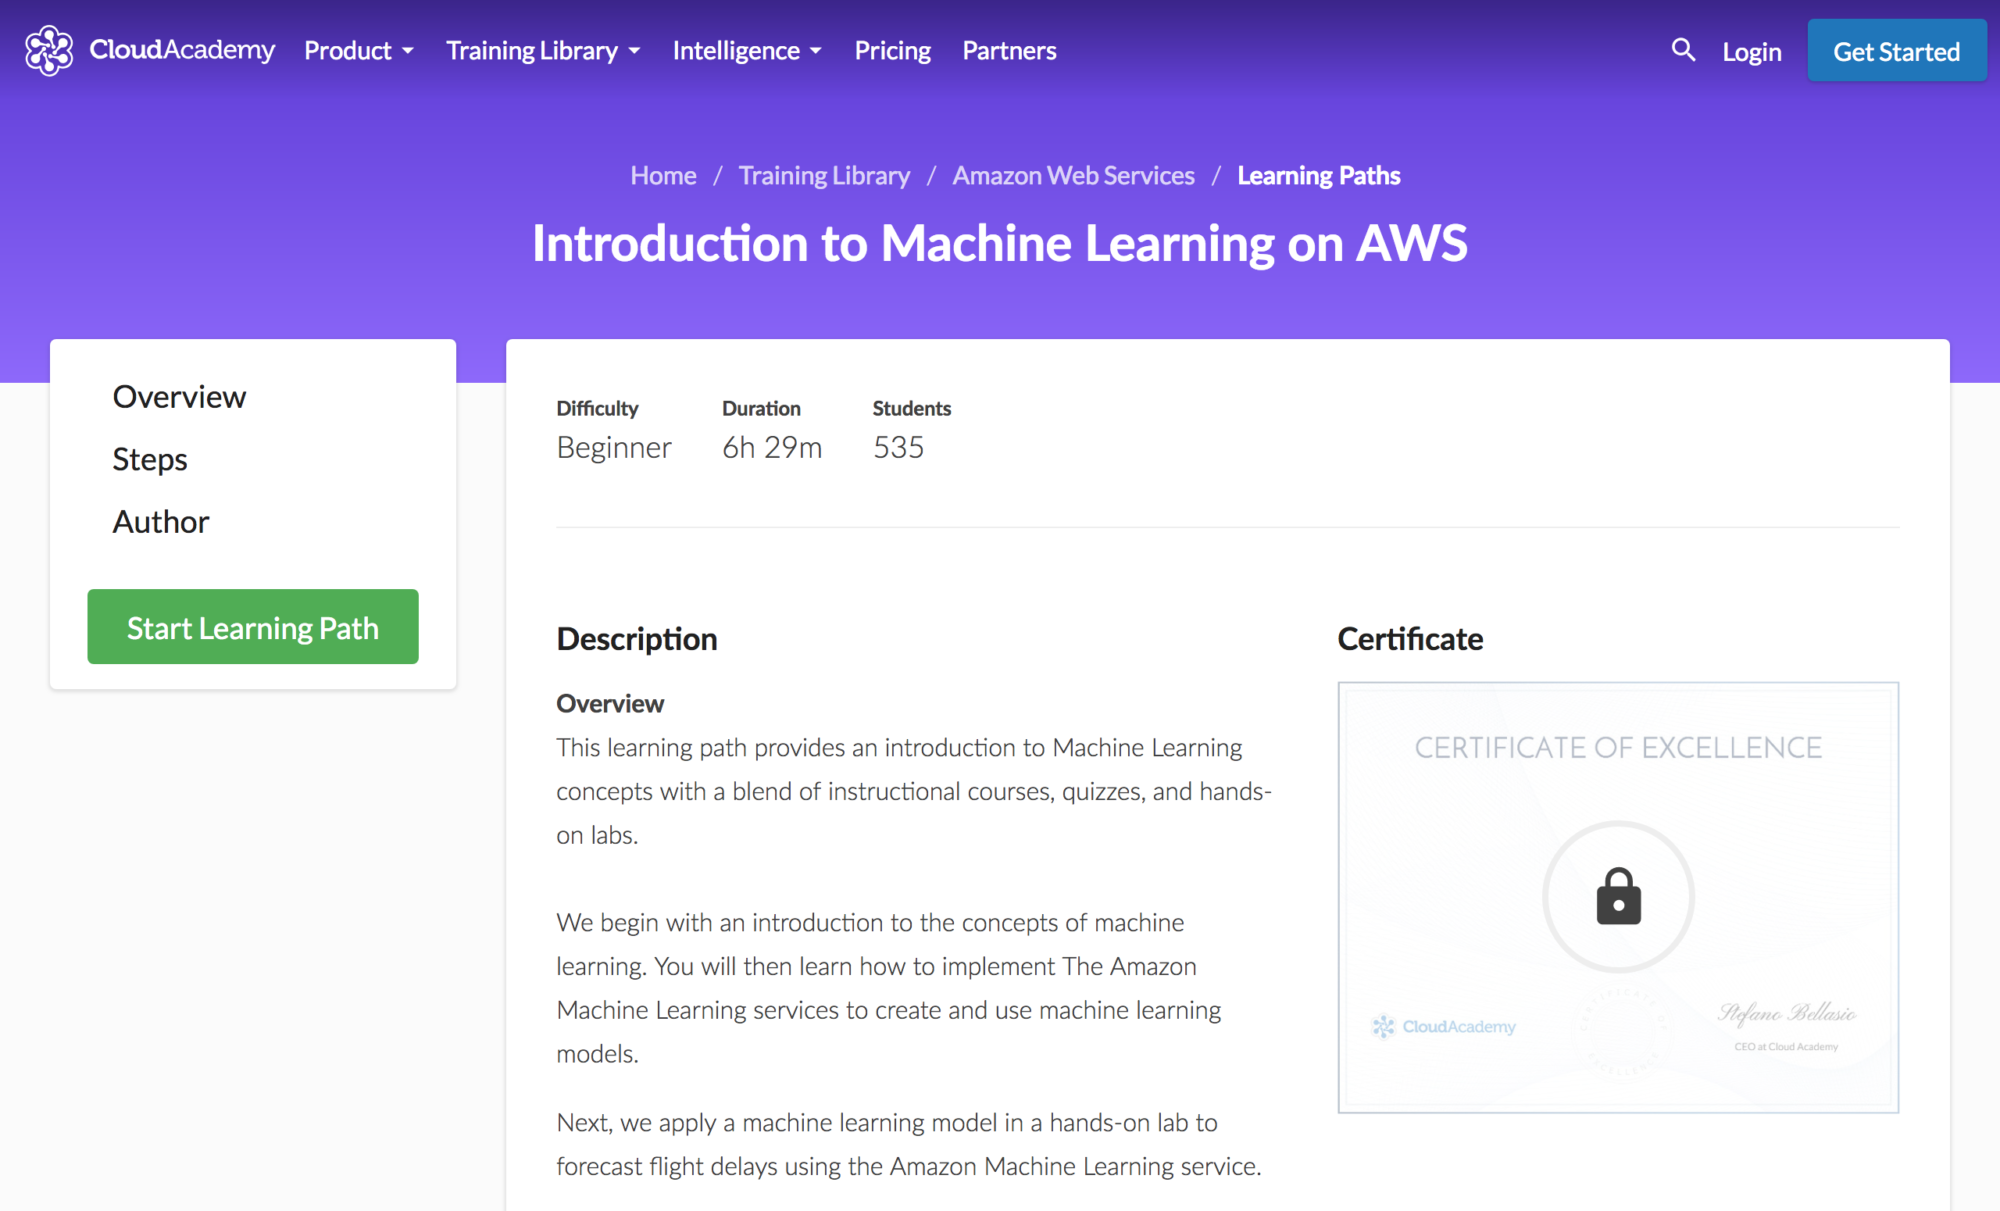 Introduction to Amazon Machine Learning Learning Path